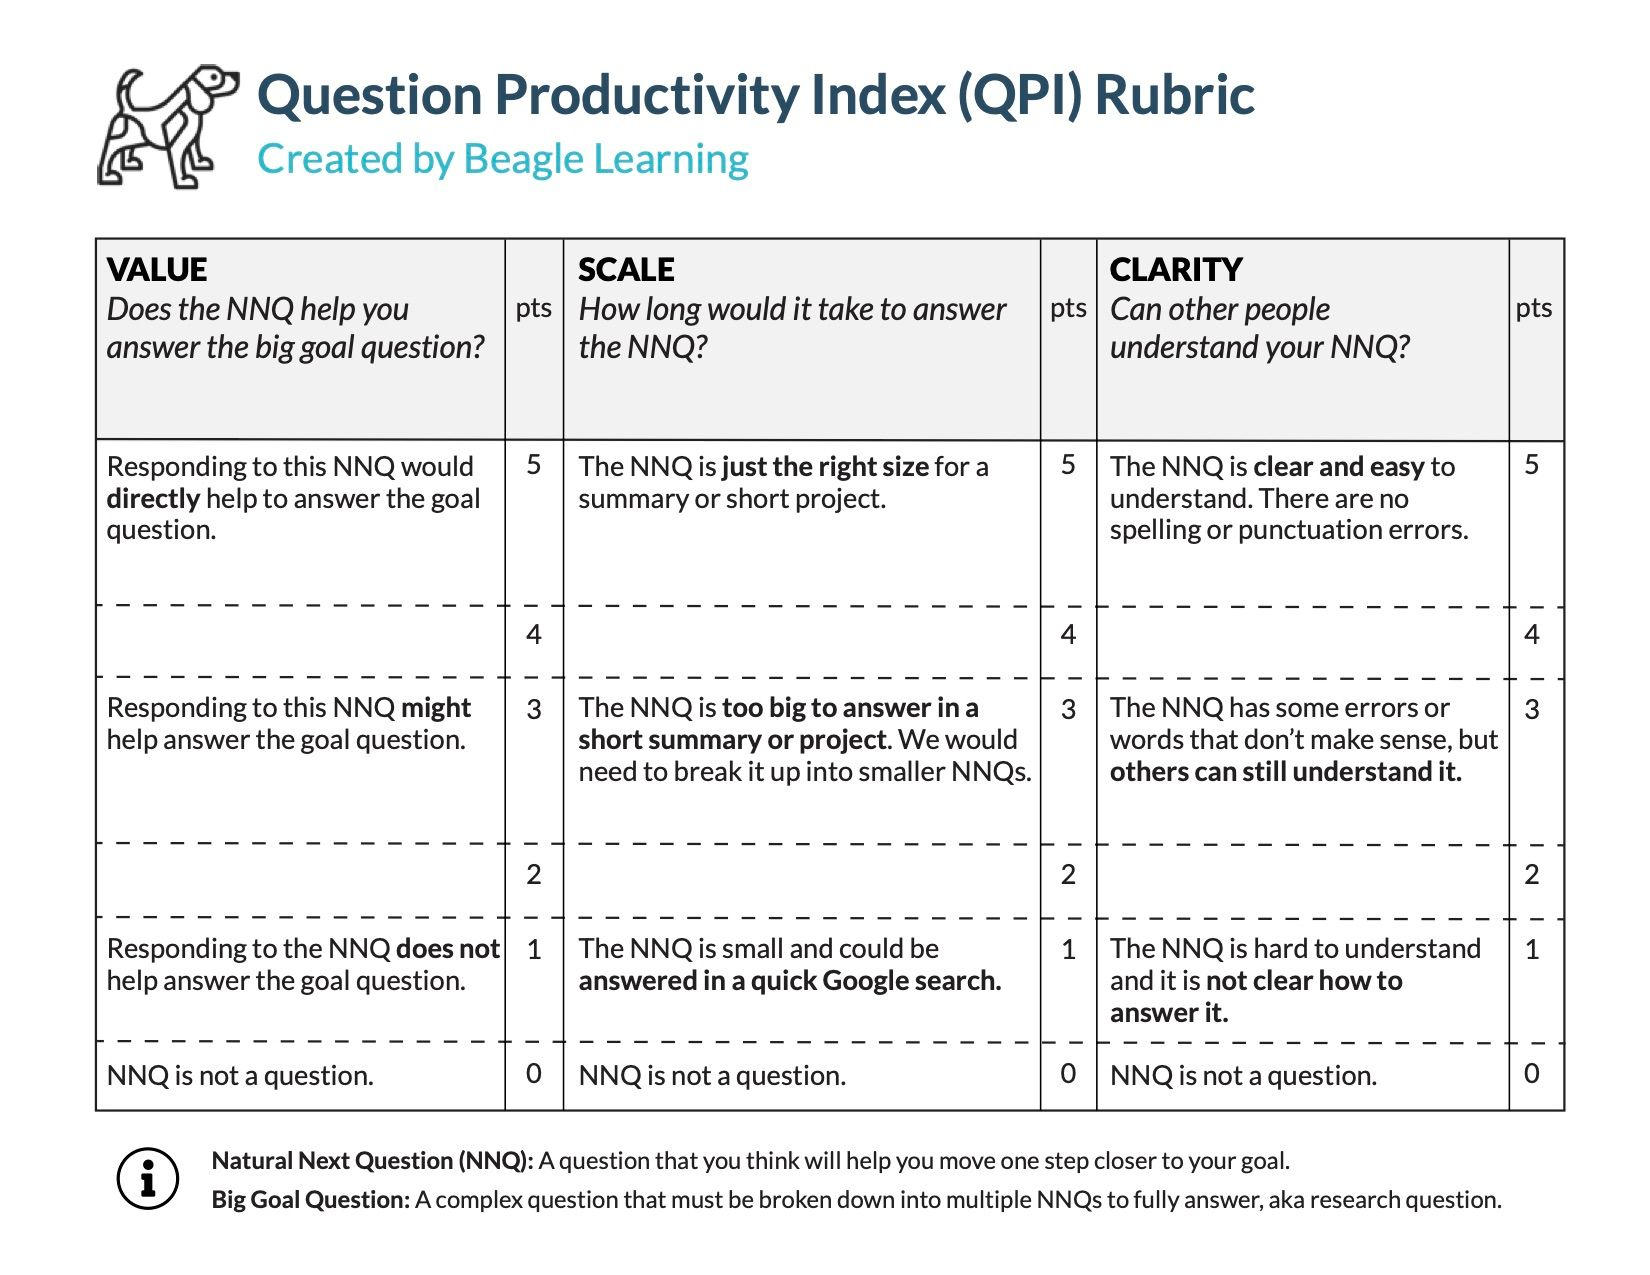 Question Productivity Index (QPI) Rubric by Beagle Learning